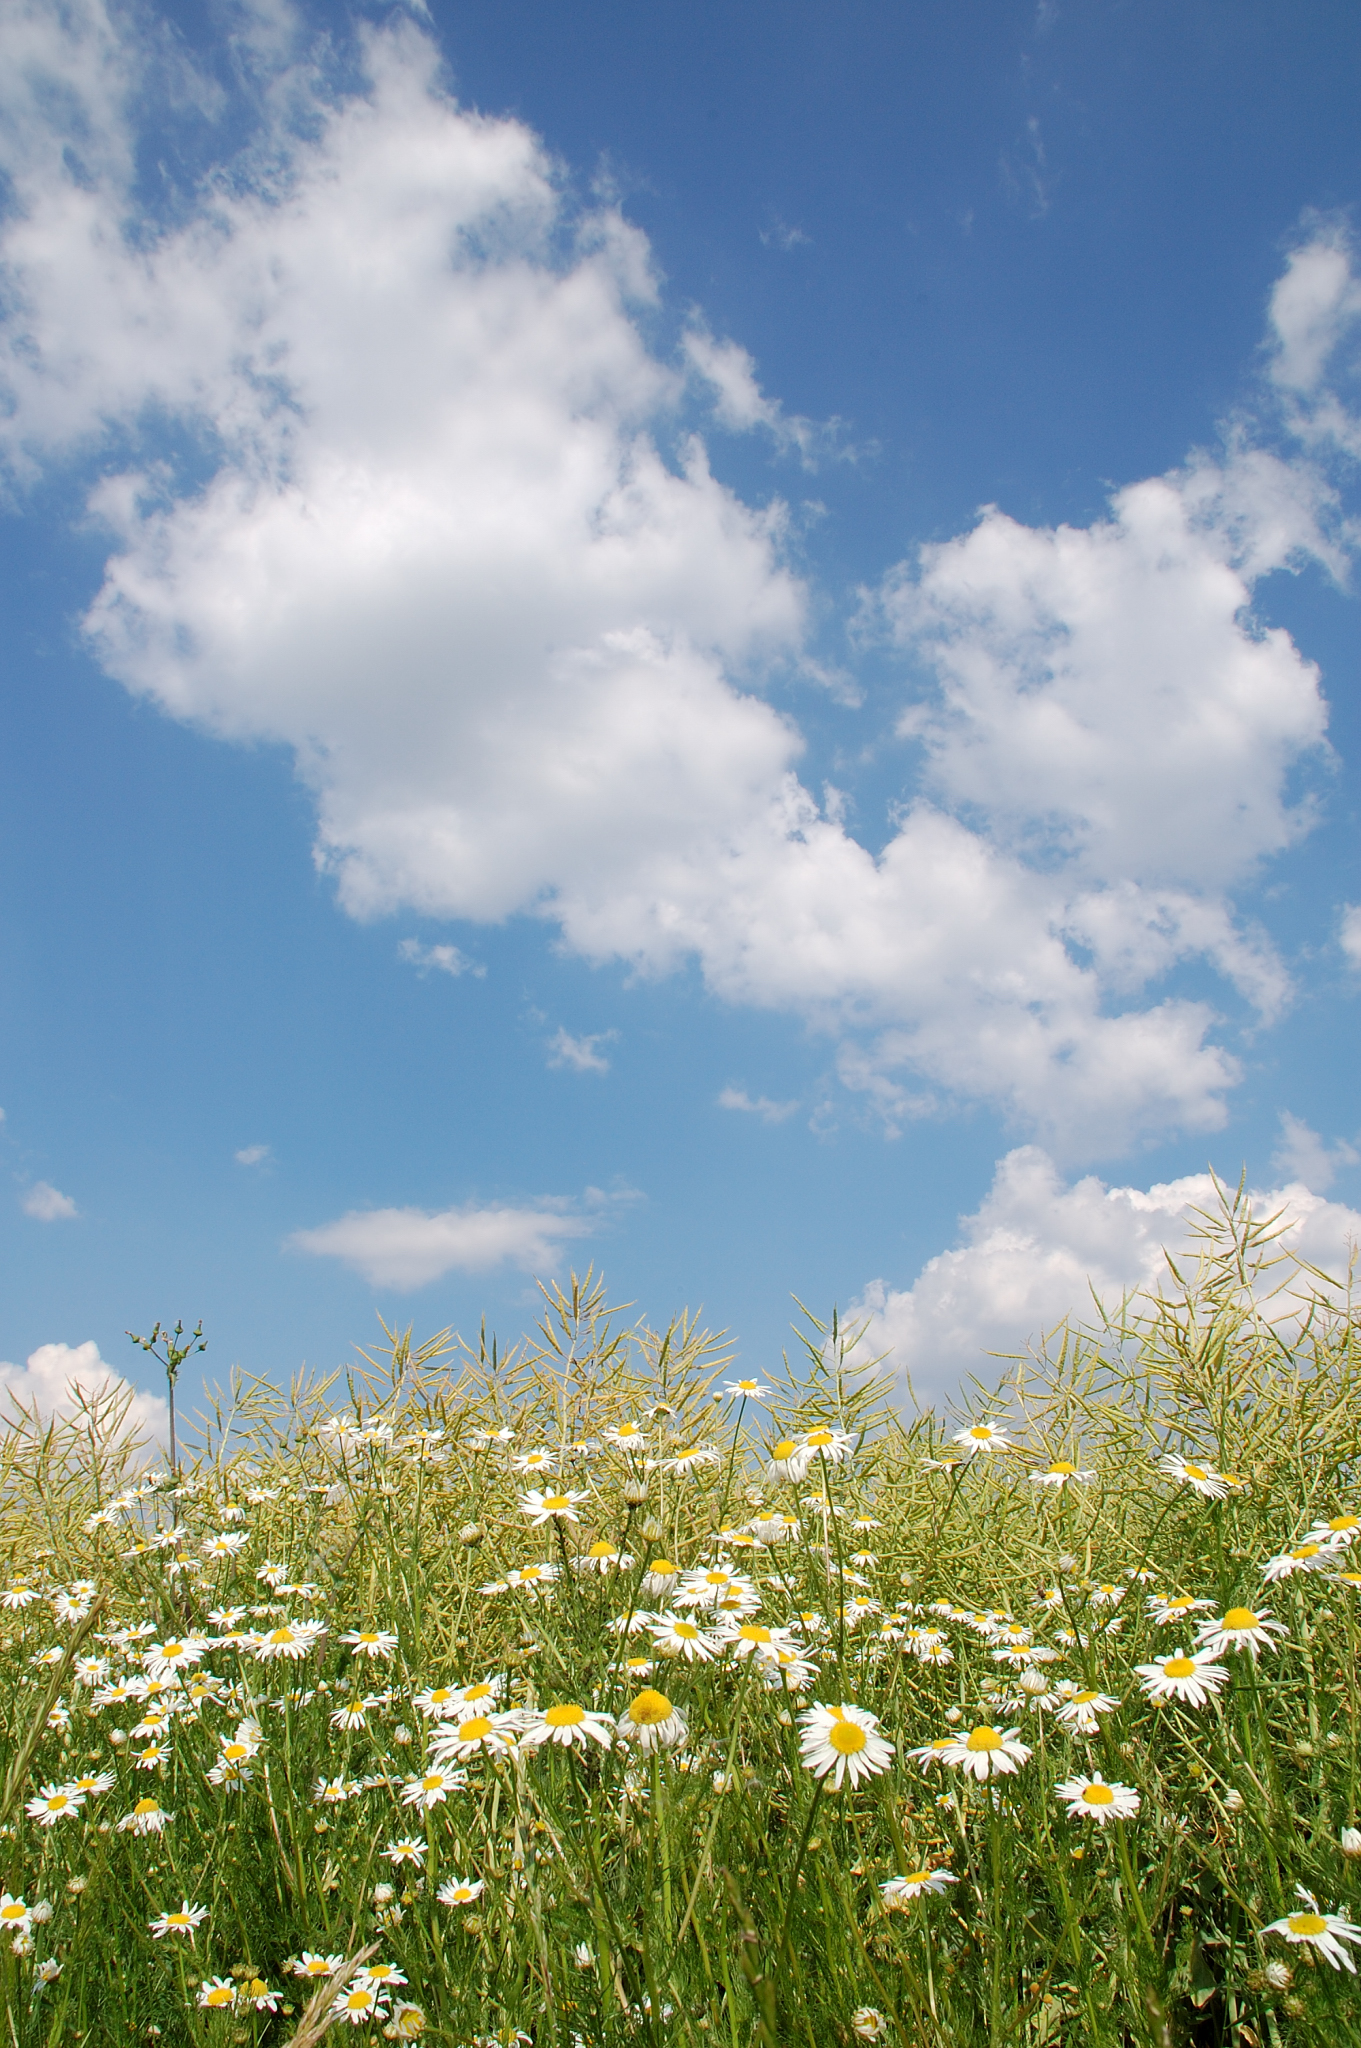 File:Camomile Colza Clouds.jpg - Wikipedia, the free encyclopedia